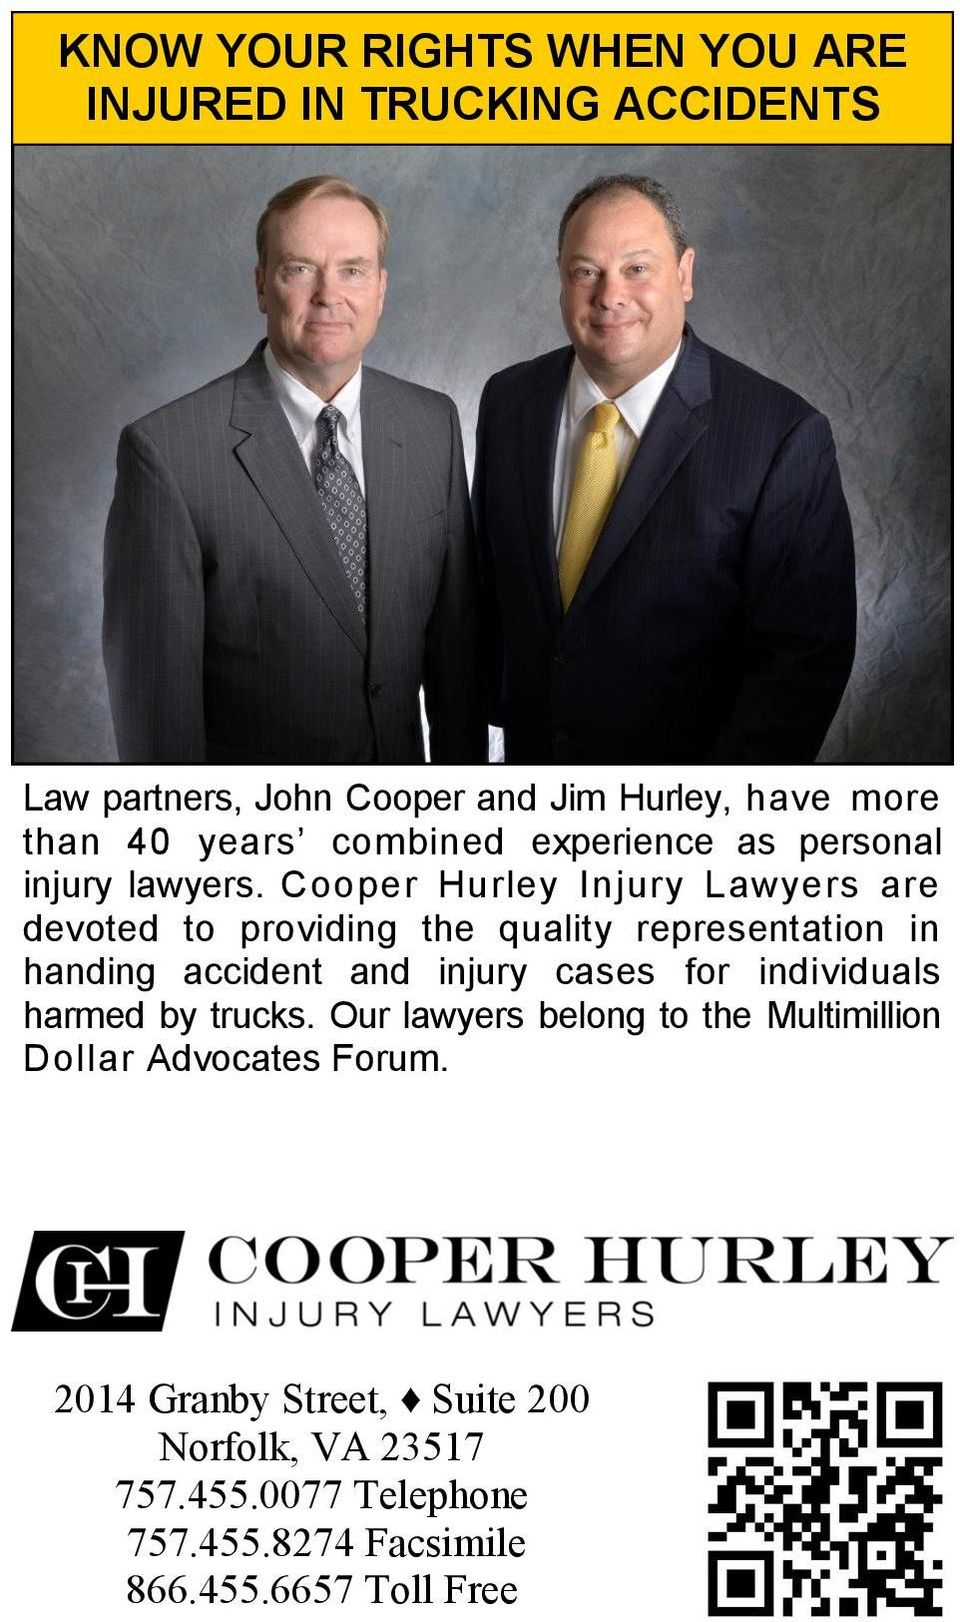 Cooper Hurley Injury Lawyers are devoted to providing the quality representation in handing accident and injury cases for